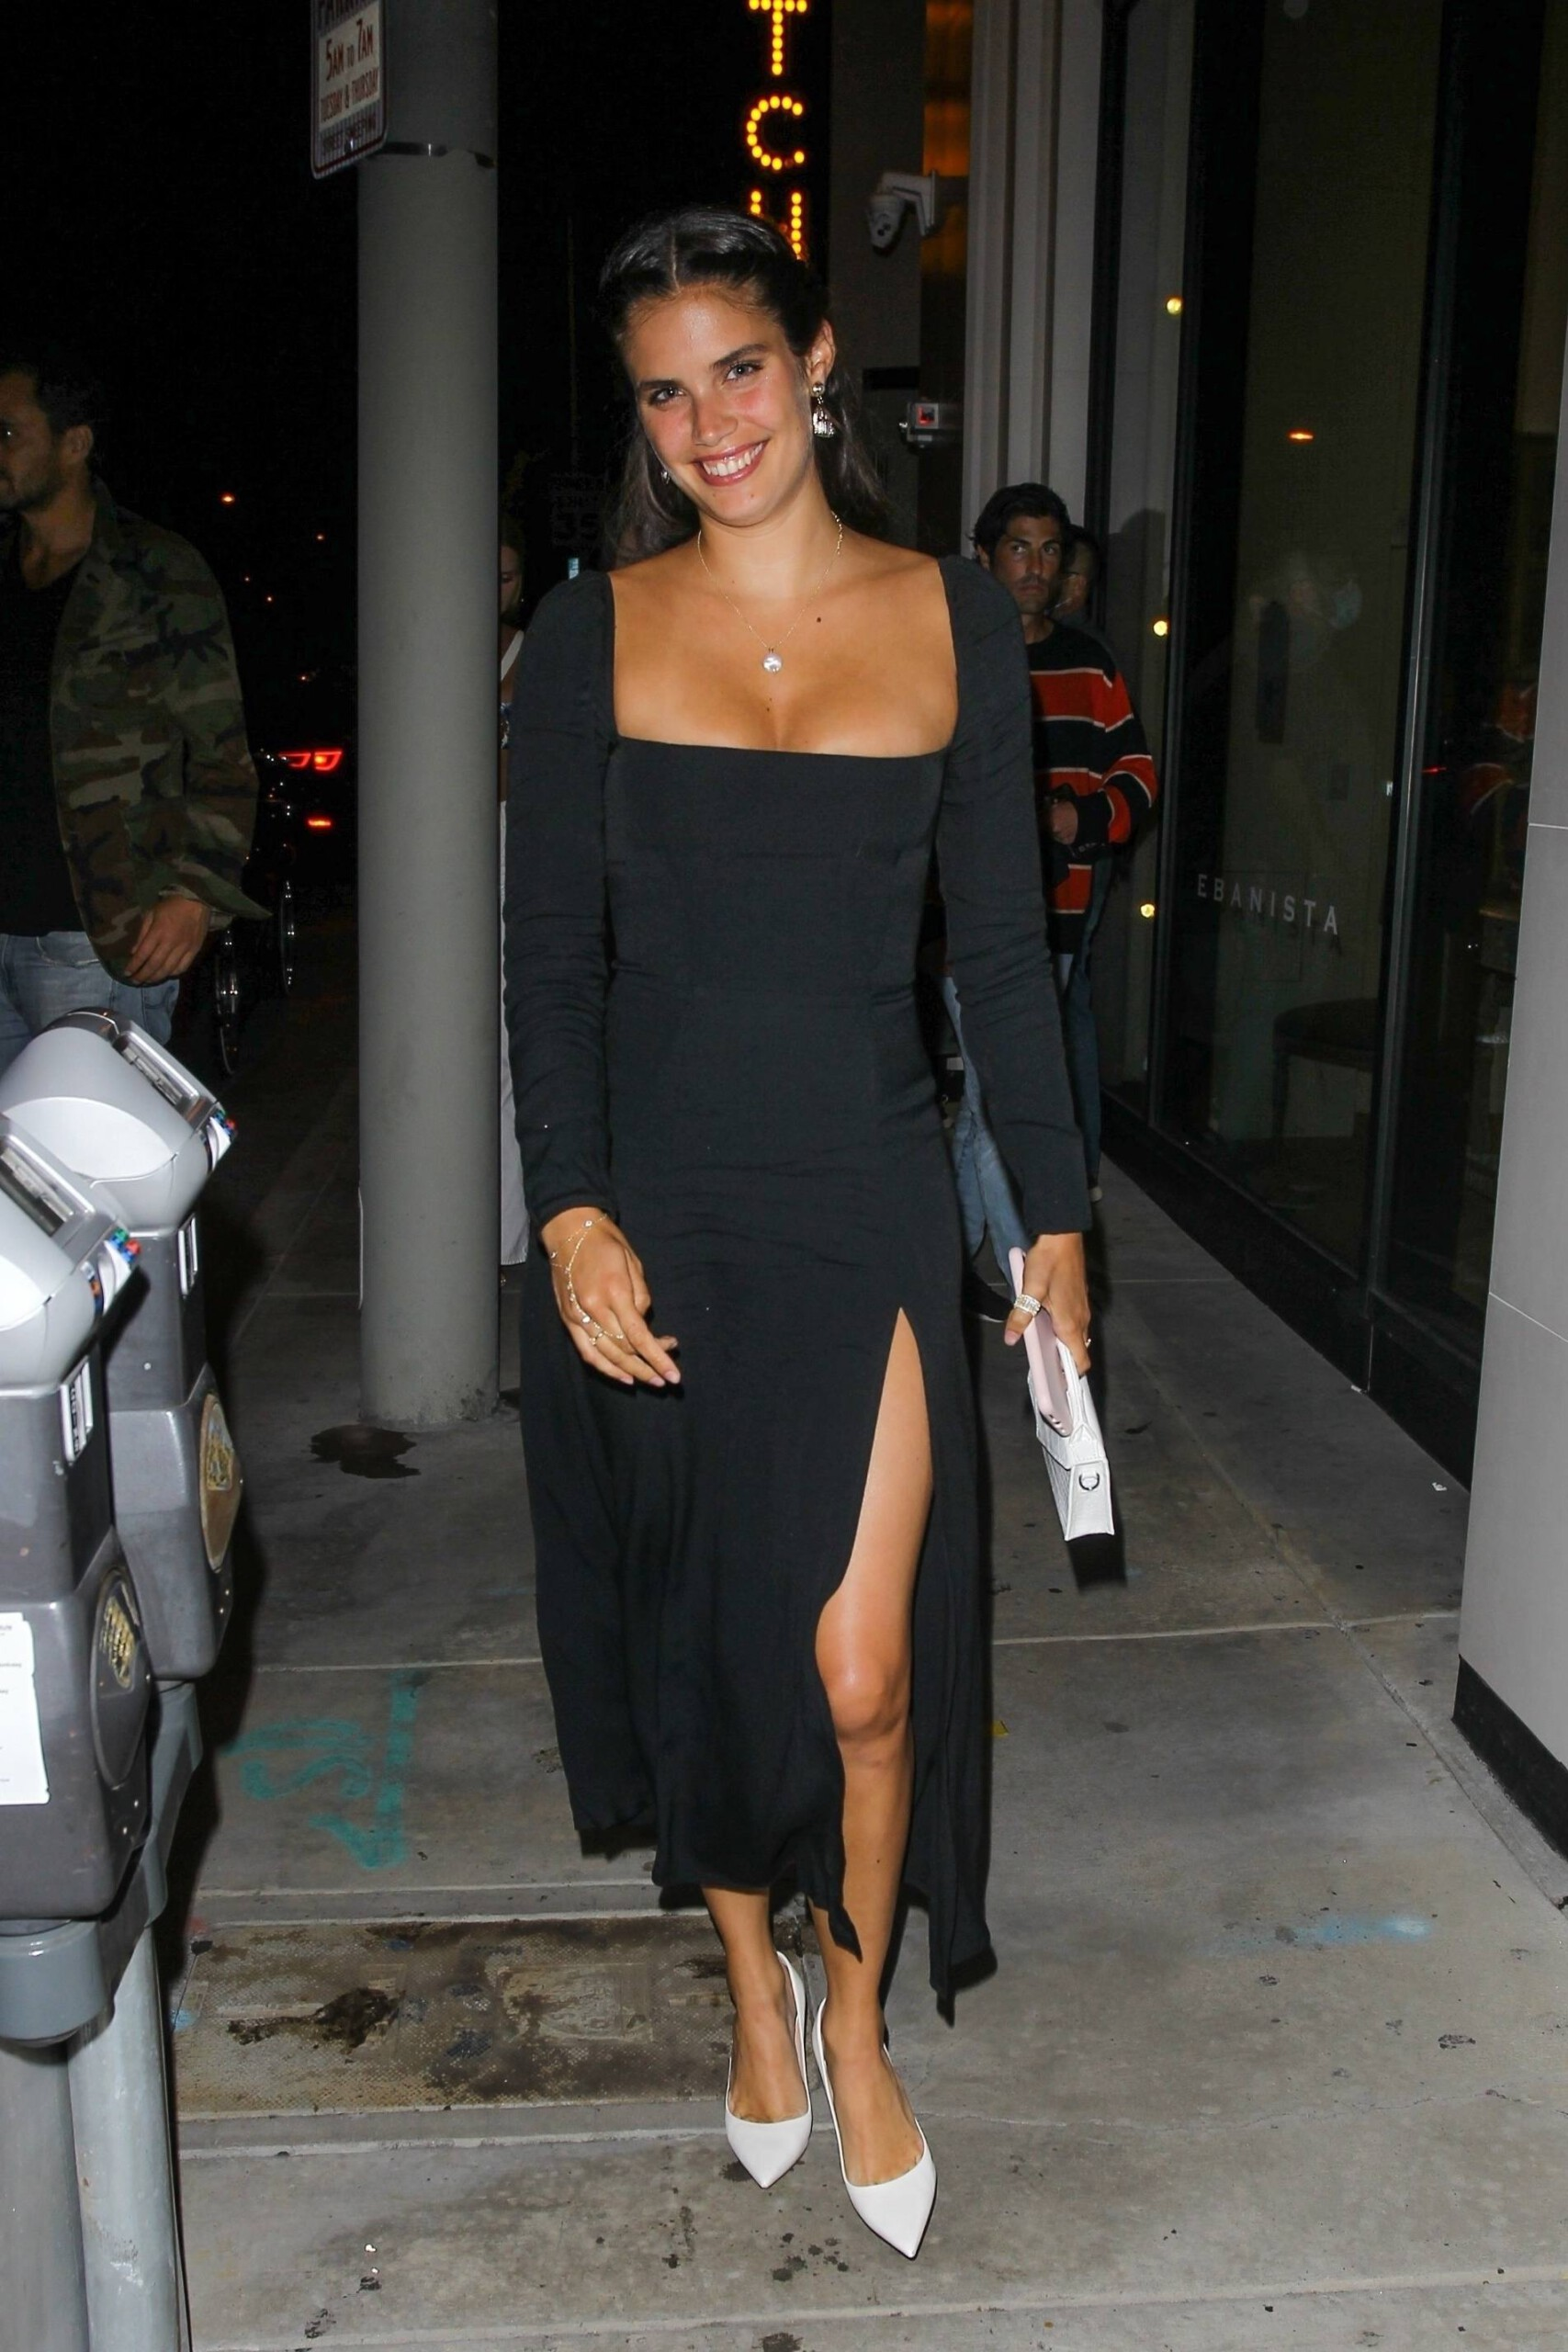 Sara Sampaio – Beautiful In Sexy Black Dress At Catch Restaurant In West Hollywood 0010